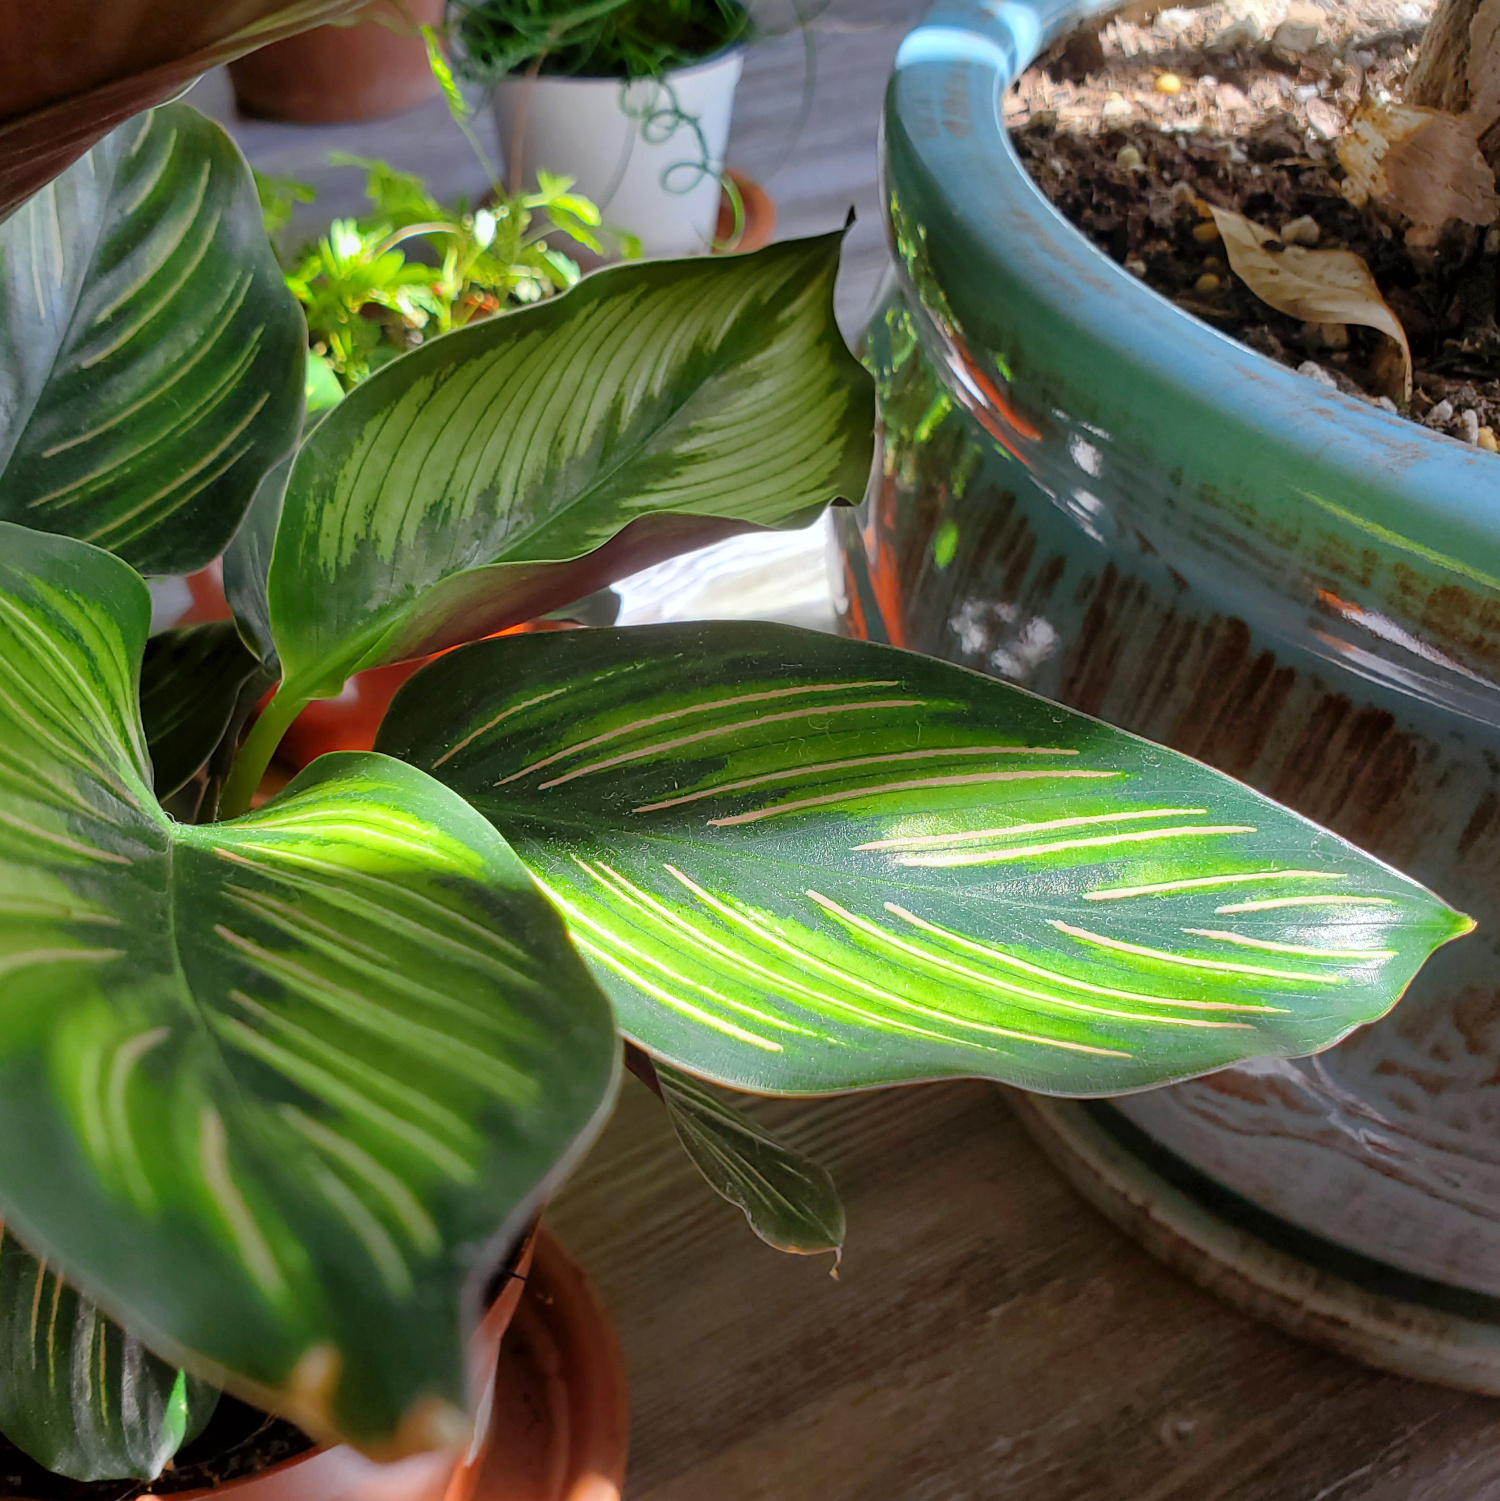 this calathea has such lovely stripes on its large leaves